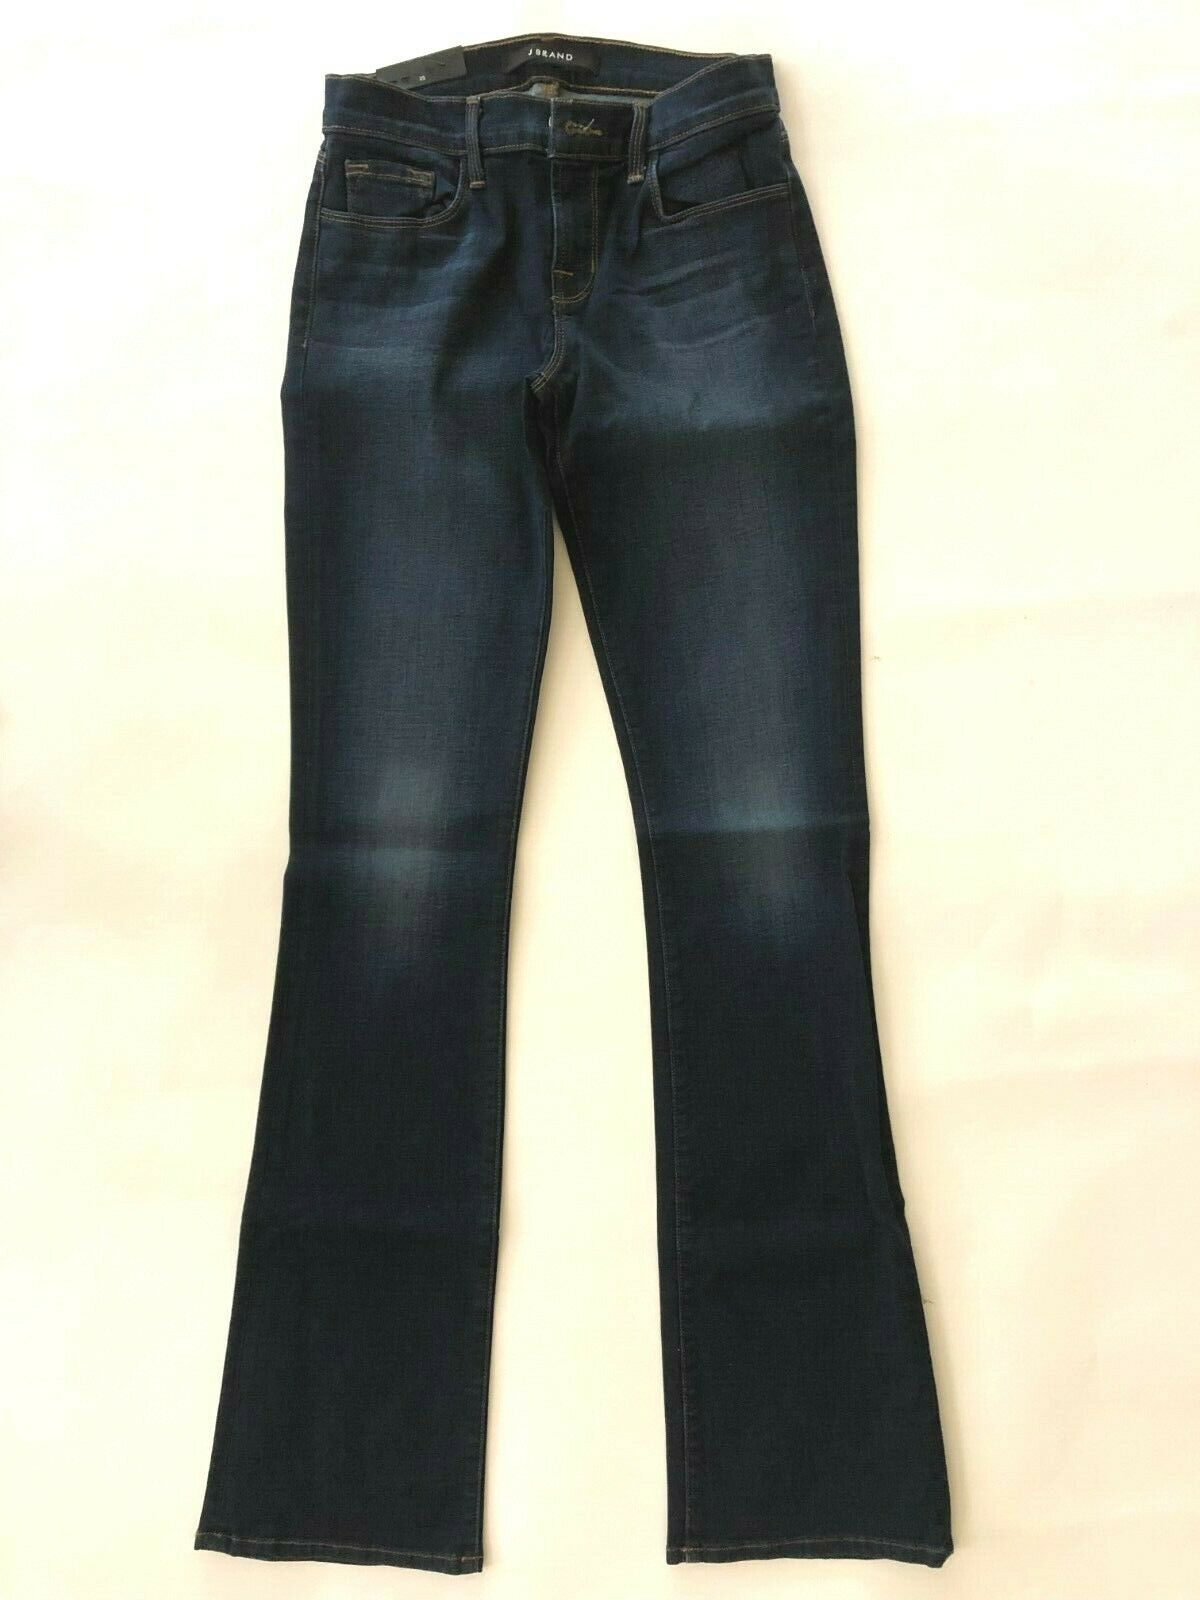 NWT J Brand Betty  188  Starlight 8119C095 mid rise boot cut jeans womens size 29  best service